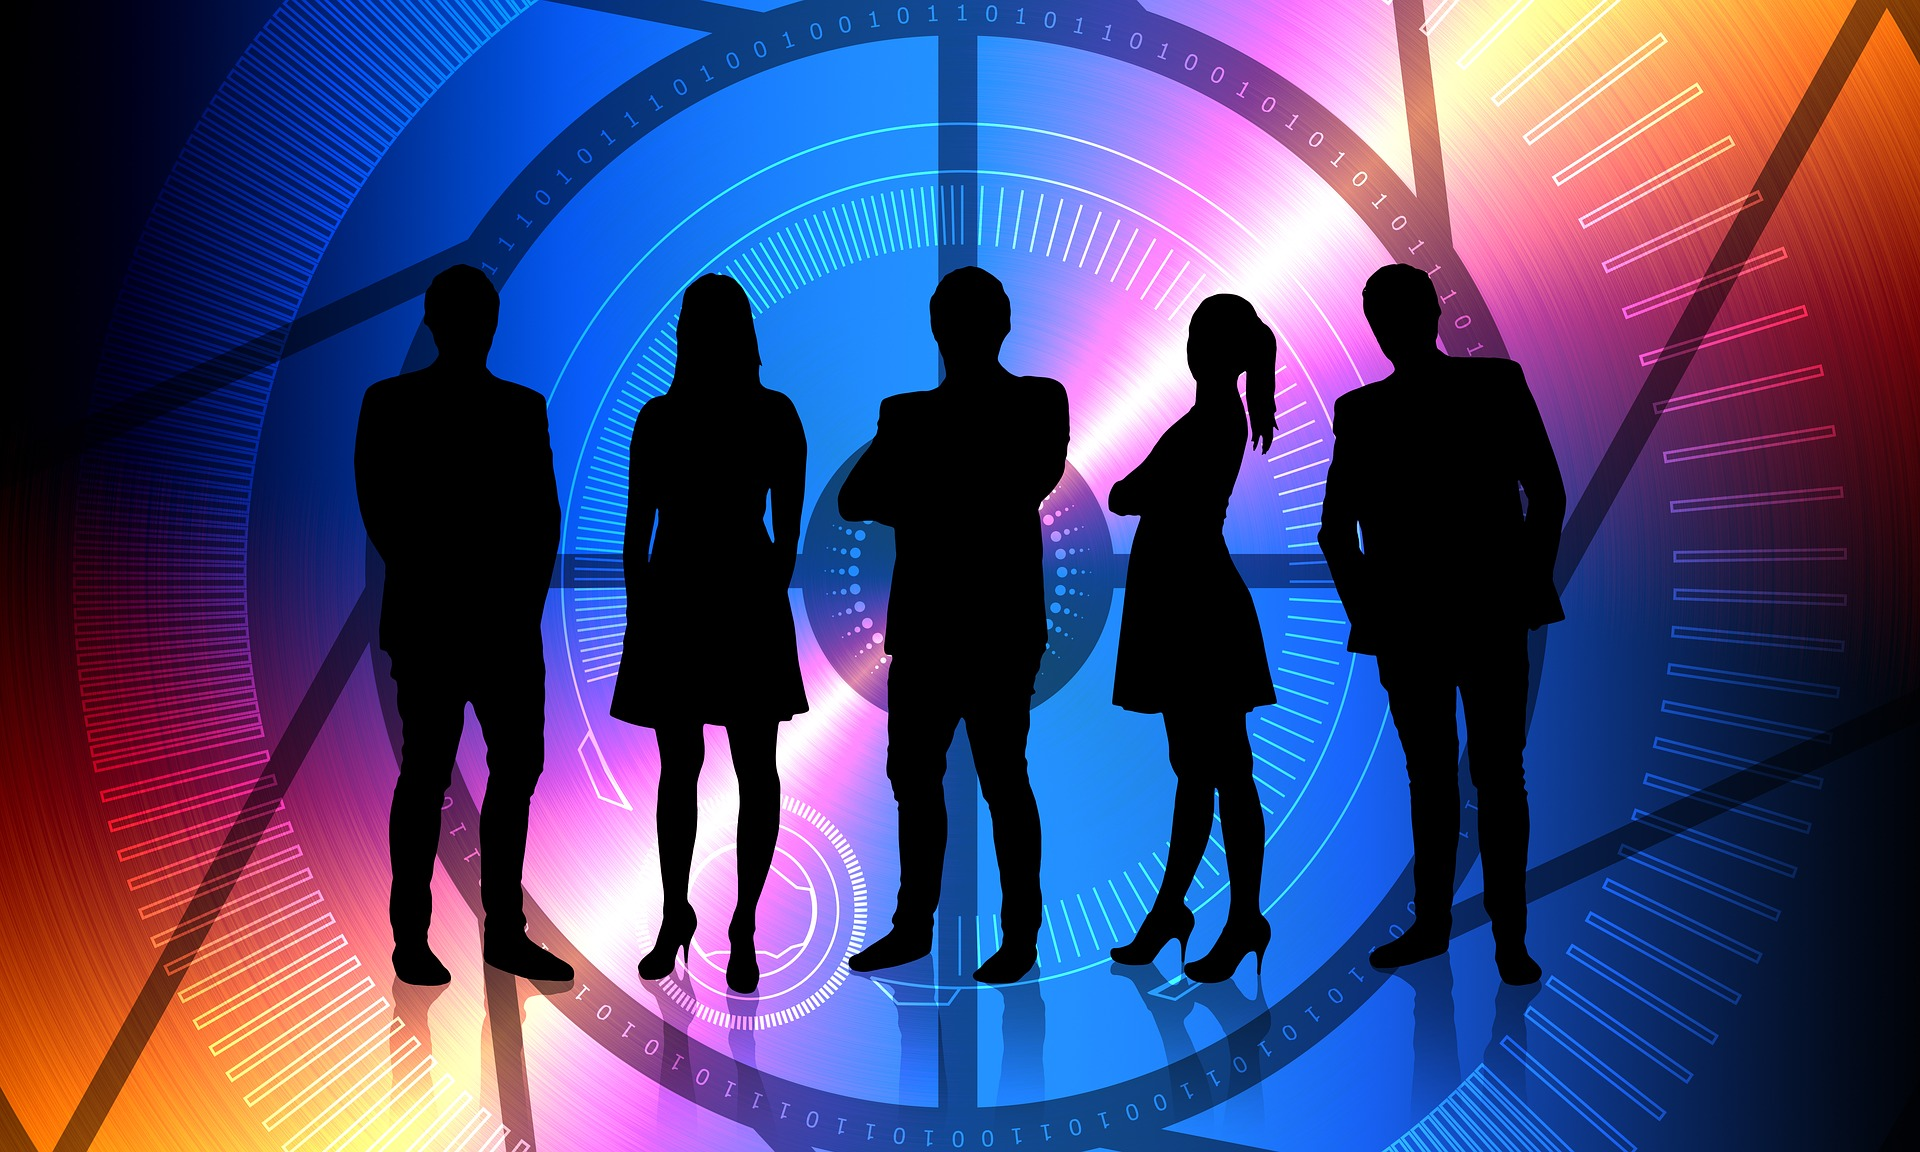 Image featuring five silhouettes in business attire.